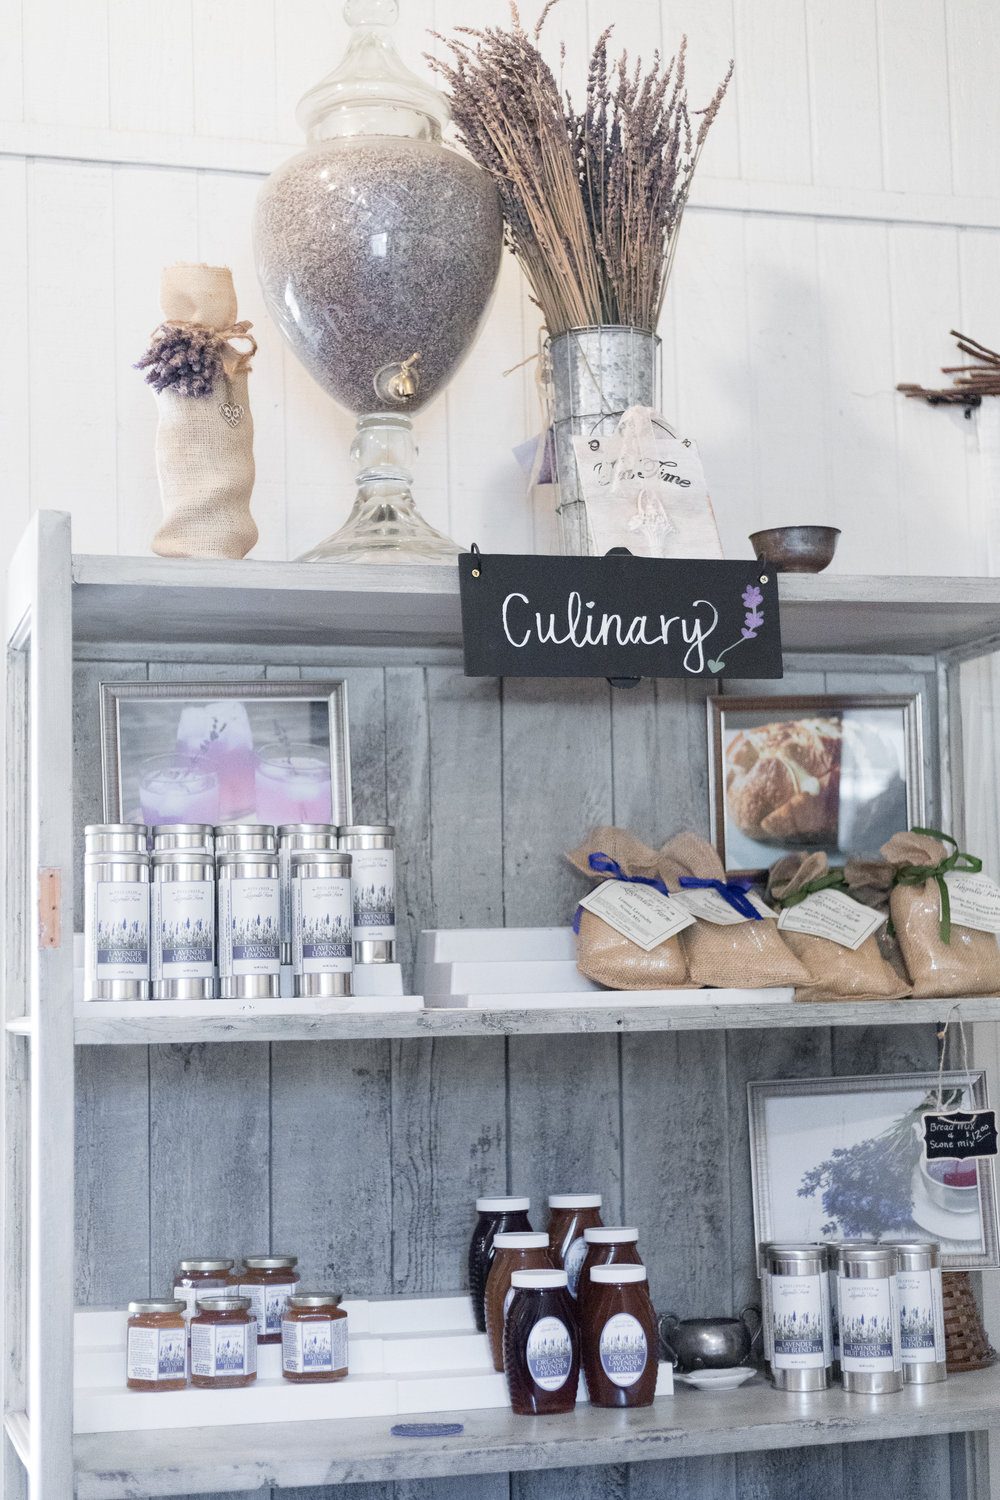 The culinary lavender shelf was one of my favorite shelves. I bought a container of dried culinary lavender…which means only one thing!  Lavender recipes! I will be sharing those with you over the next week.